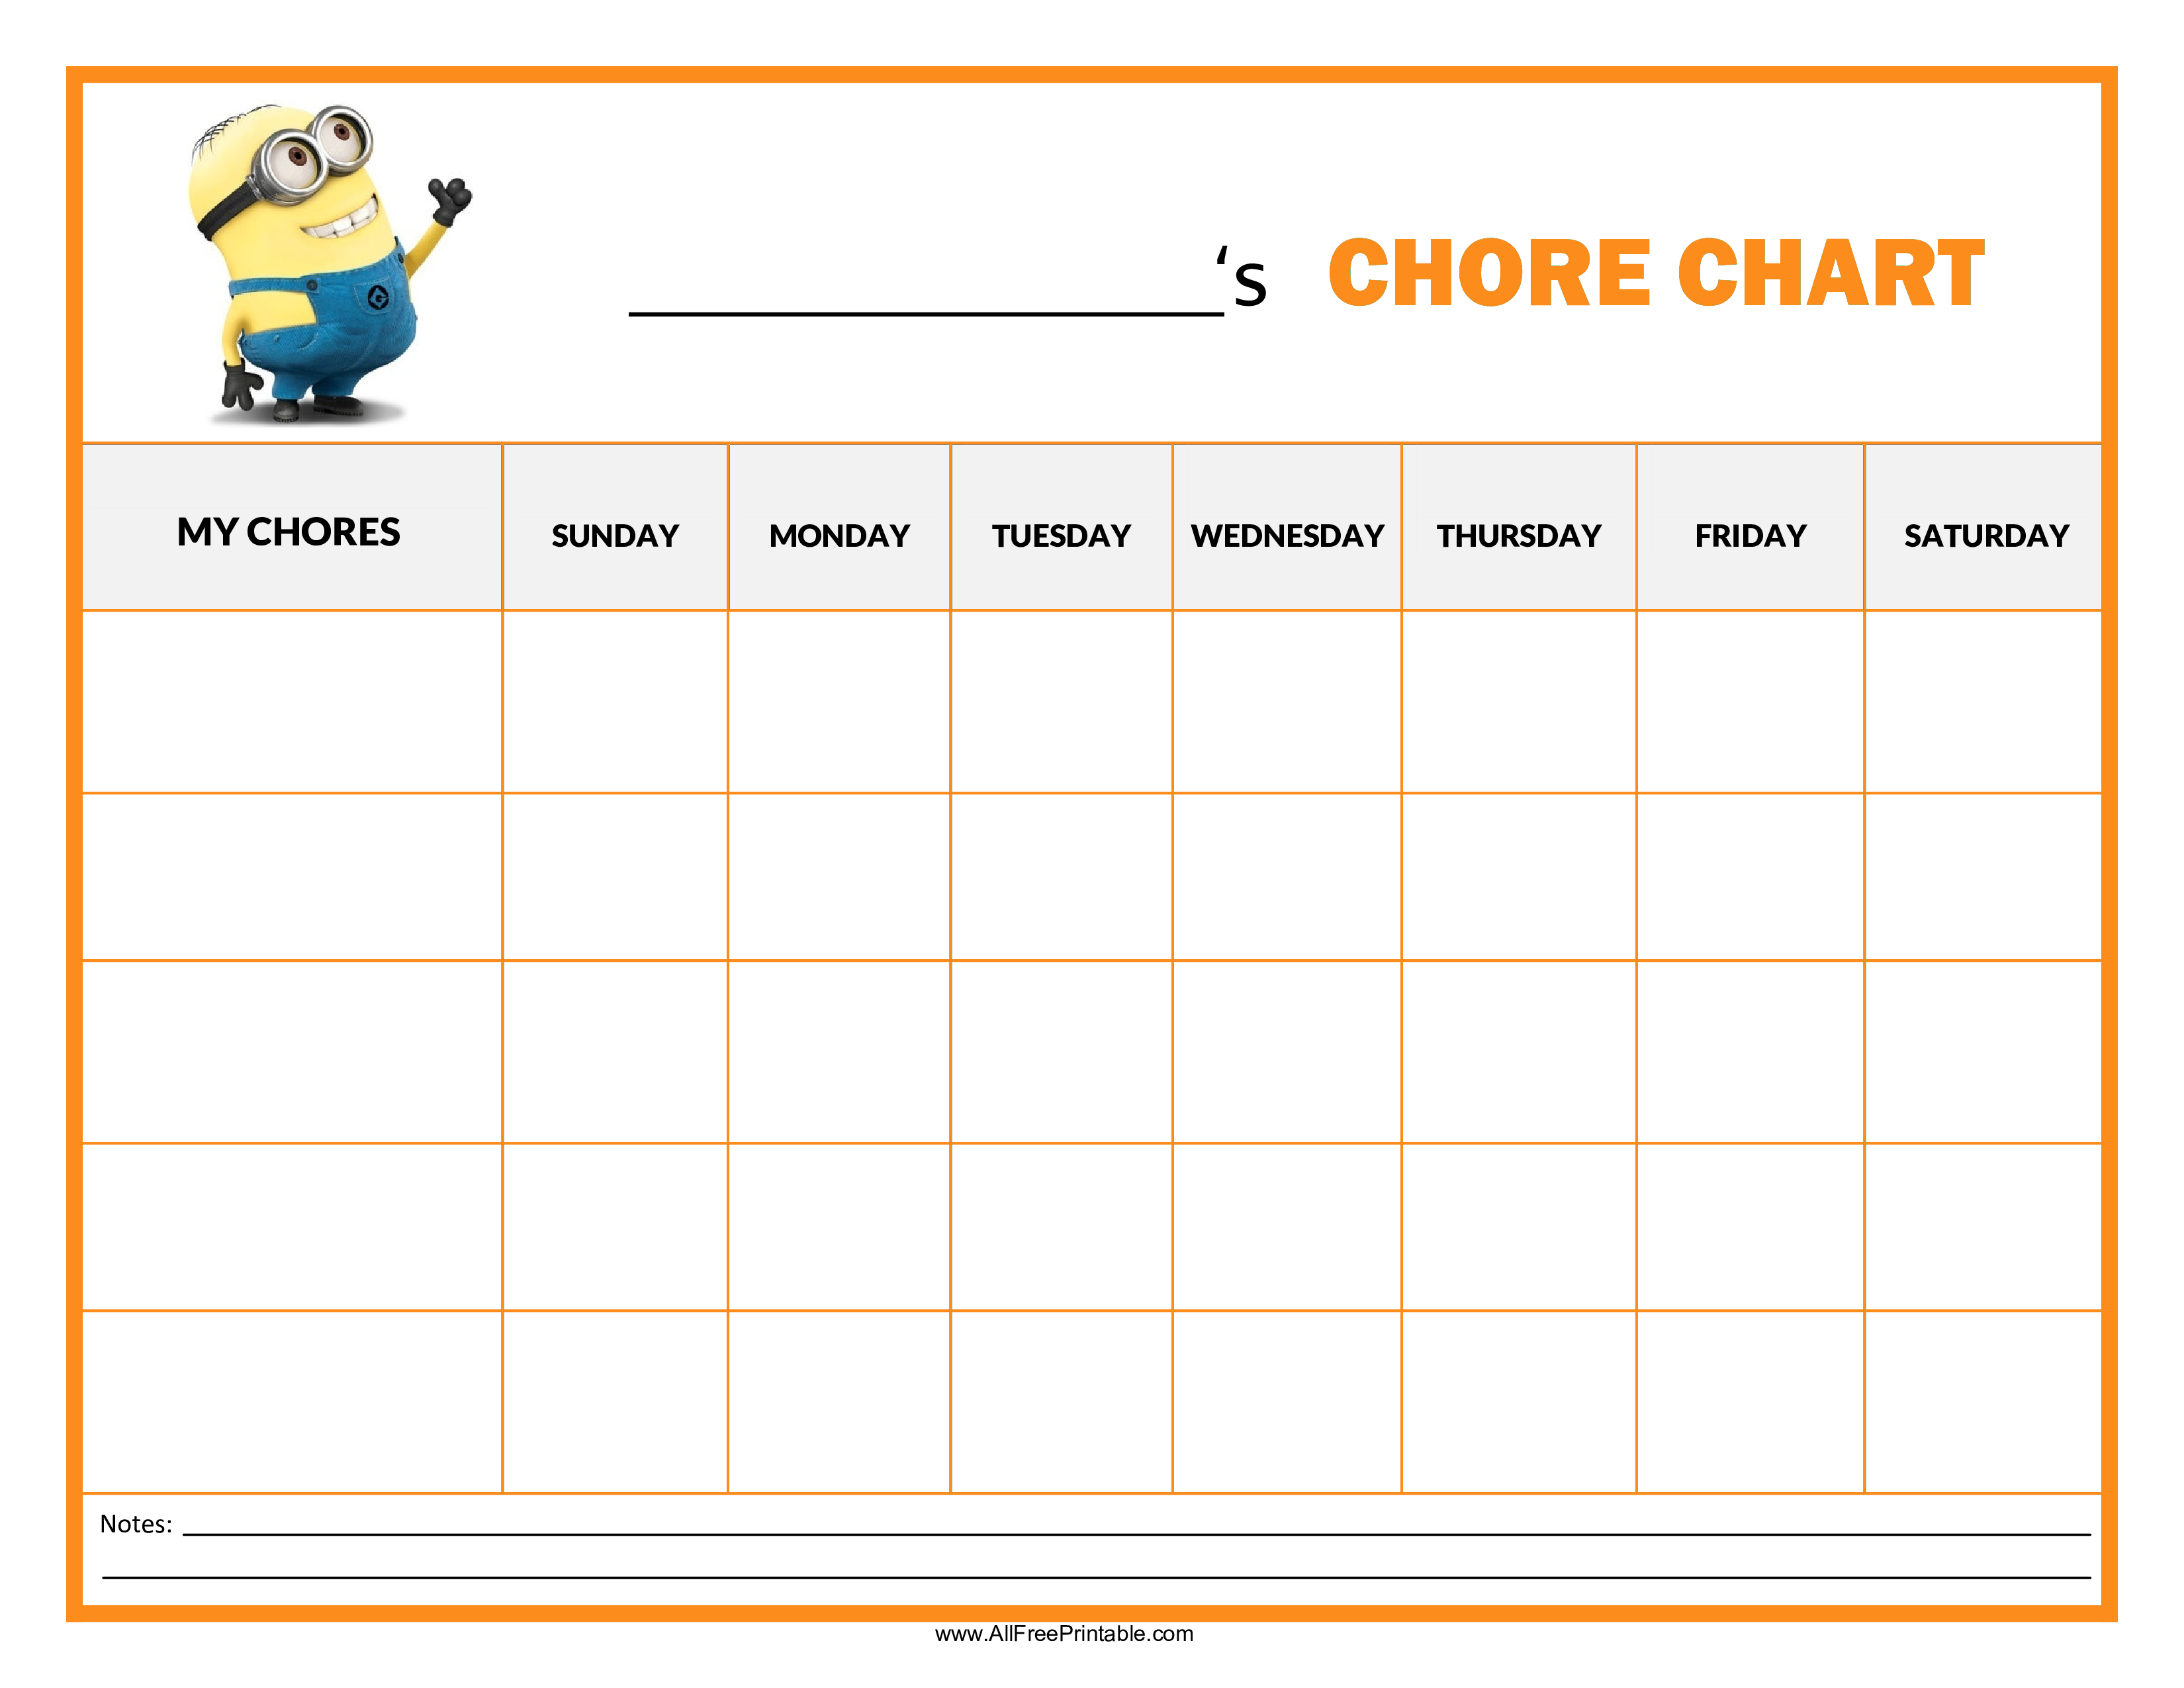 Classroom Routine Ideas ~ Free chore chart minion templates at